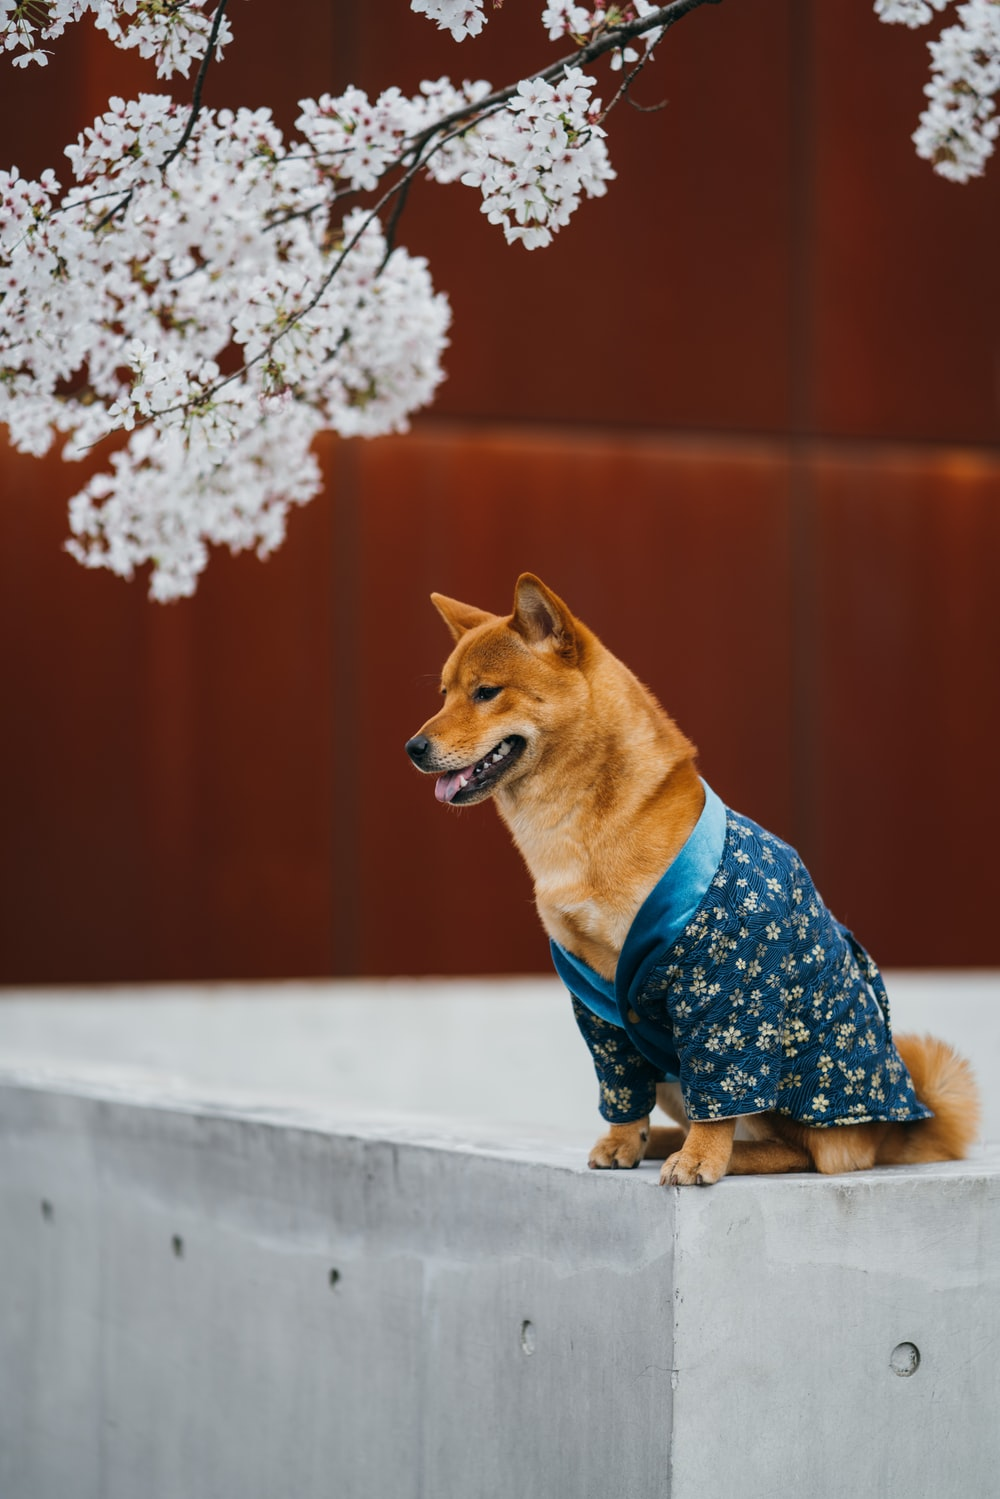 brown short coated dog wearing blue and white floral dress sitting on gray concrete surface